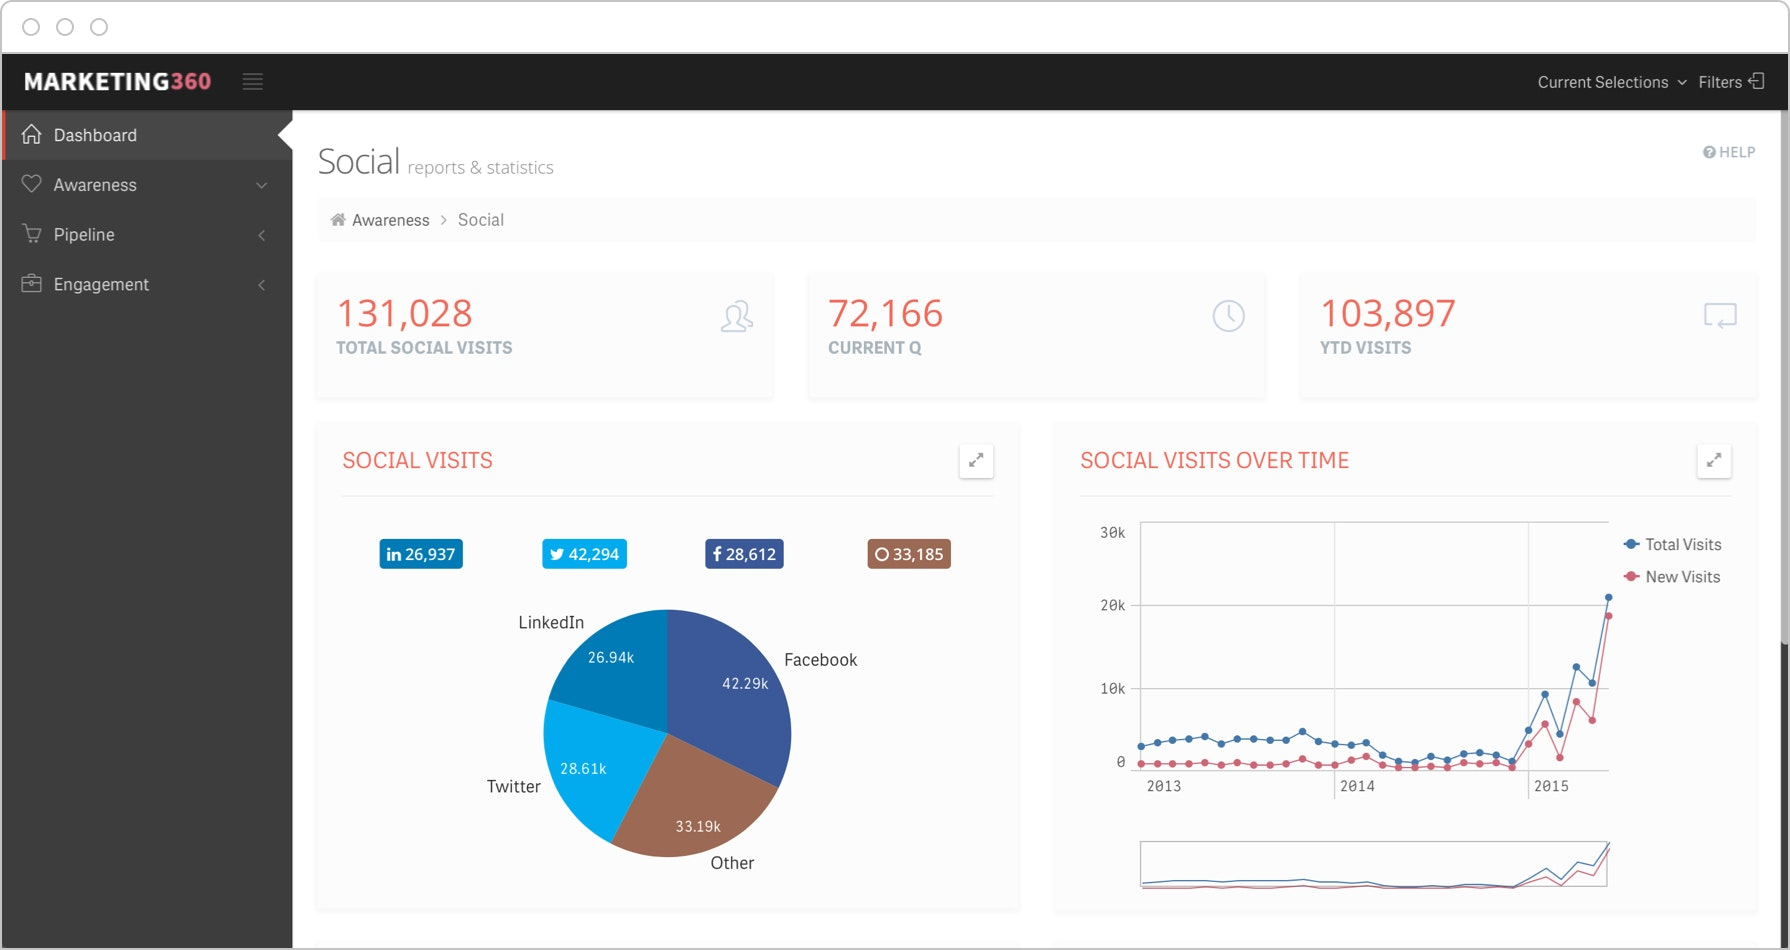 Social media dashboards show how each platform drives engagement, visits and influence across the sales funnel.